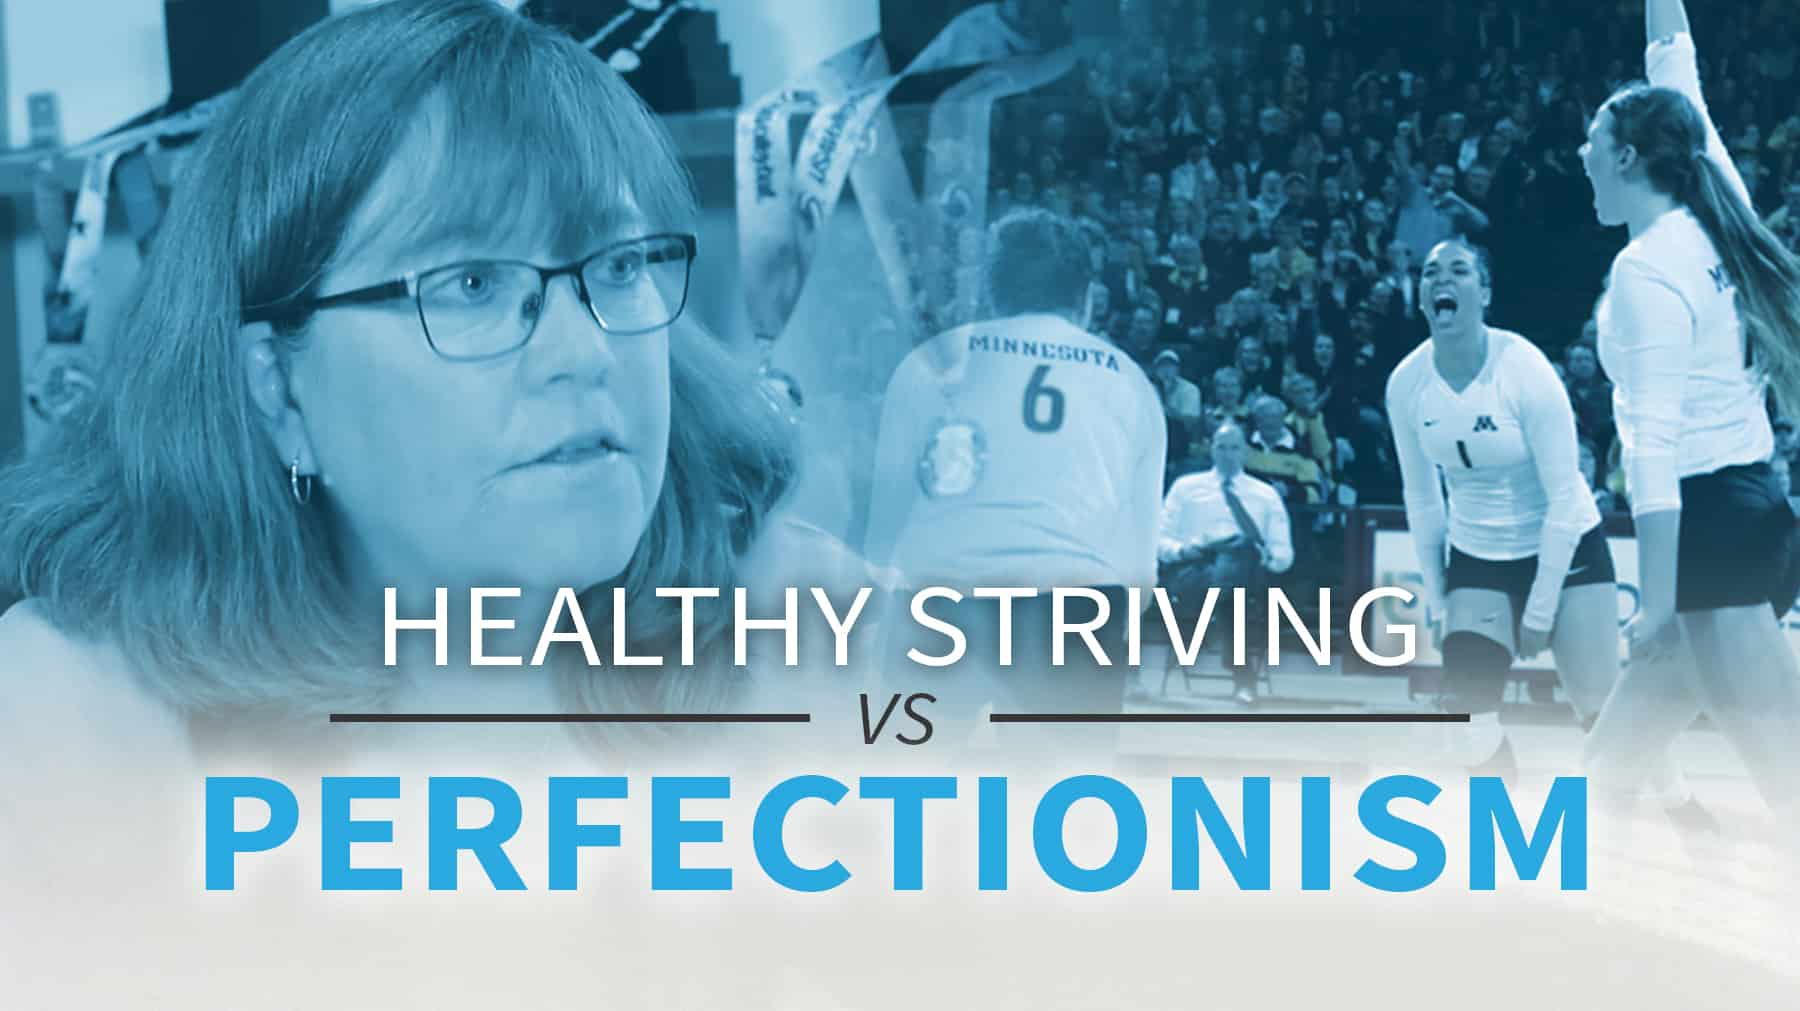 Healthy Striving Vs Perfectionism